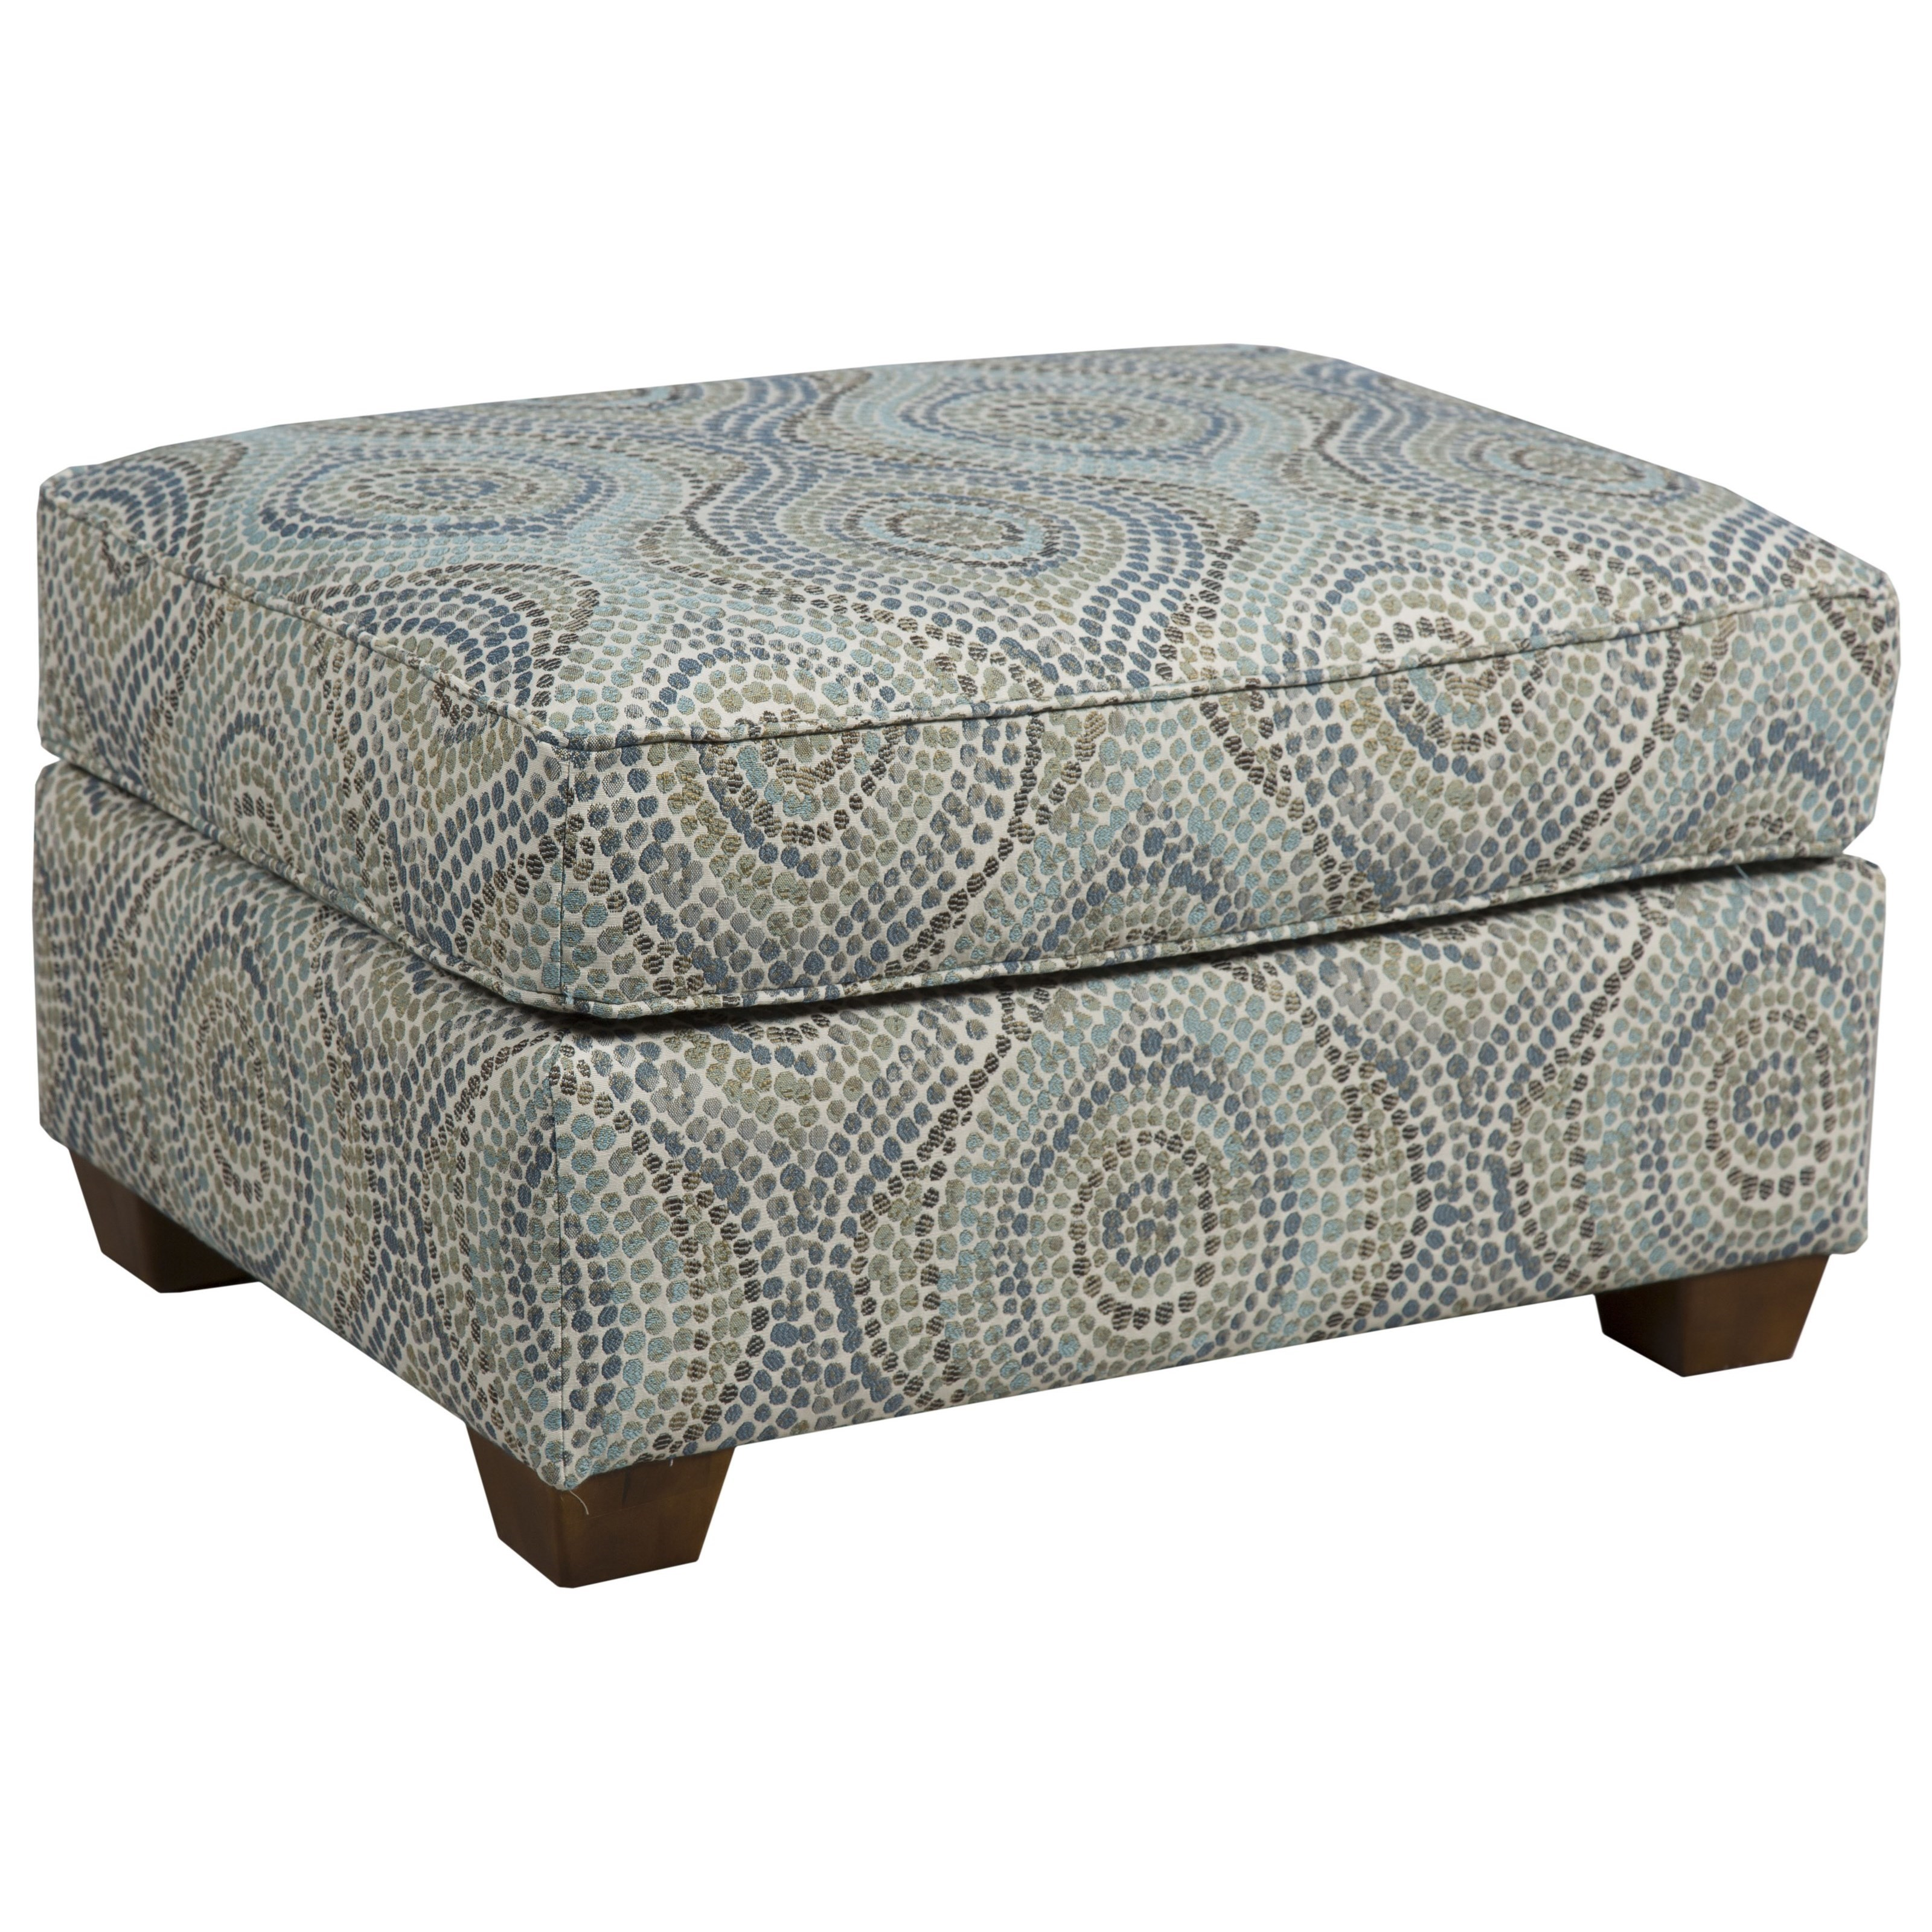 145 Ottoman by Capris Furniture at Esprit Decor Home Furnishings